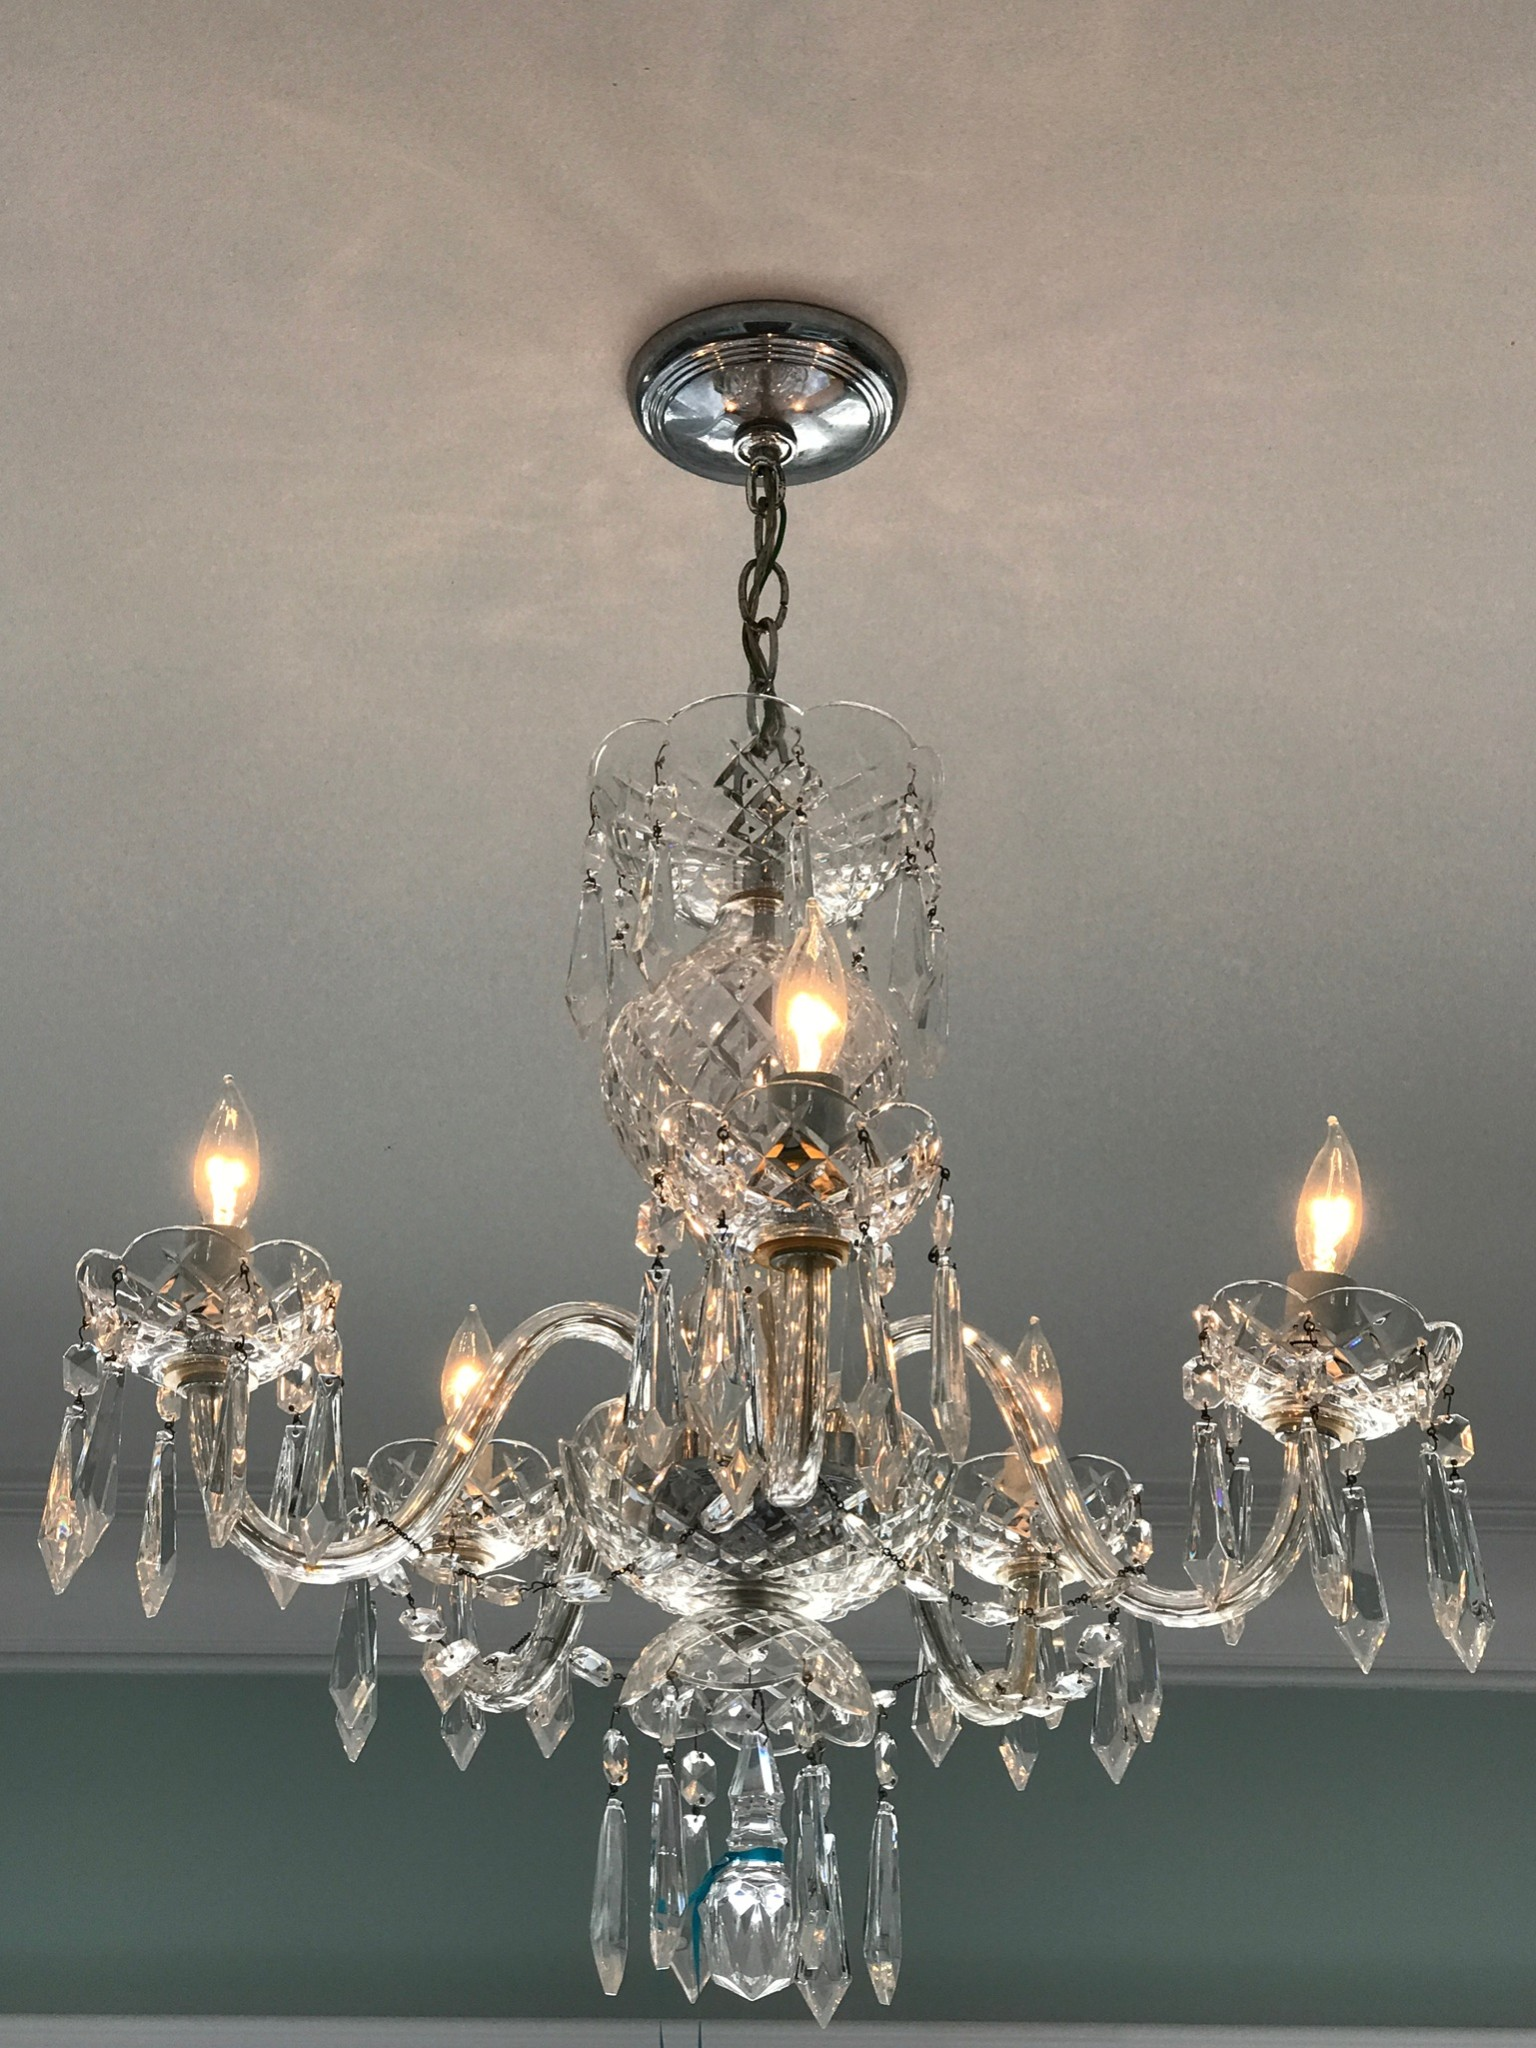 m home thorby chandelier page light additions chandeliers latest ross on redressed copy sale for retouched